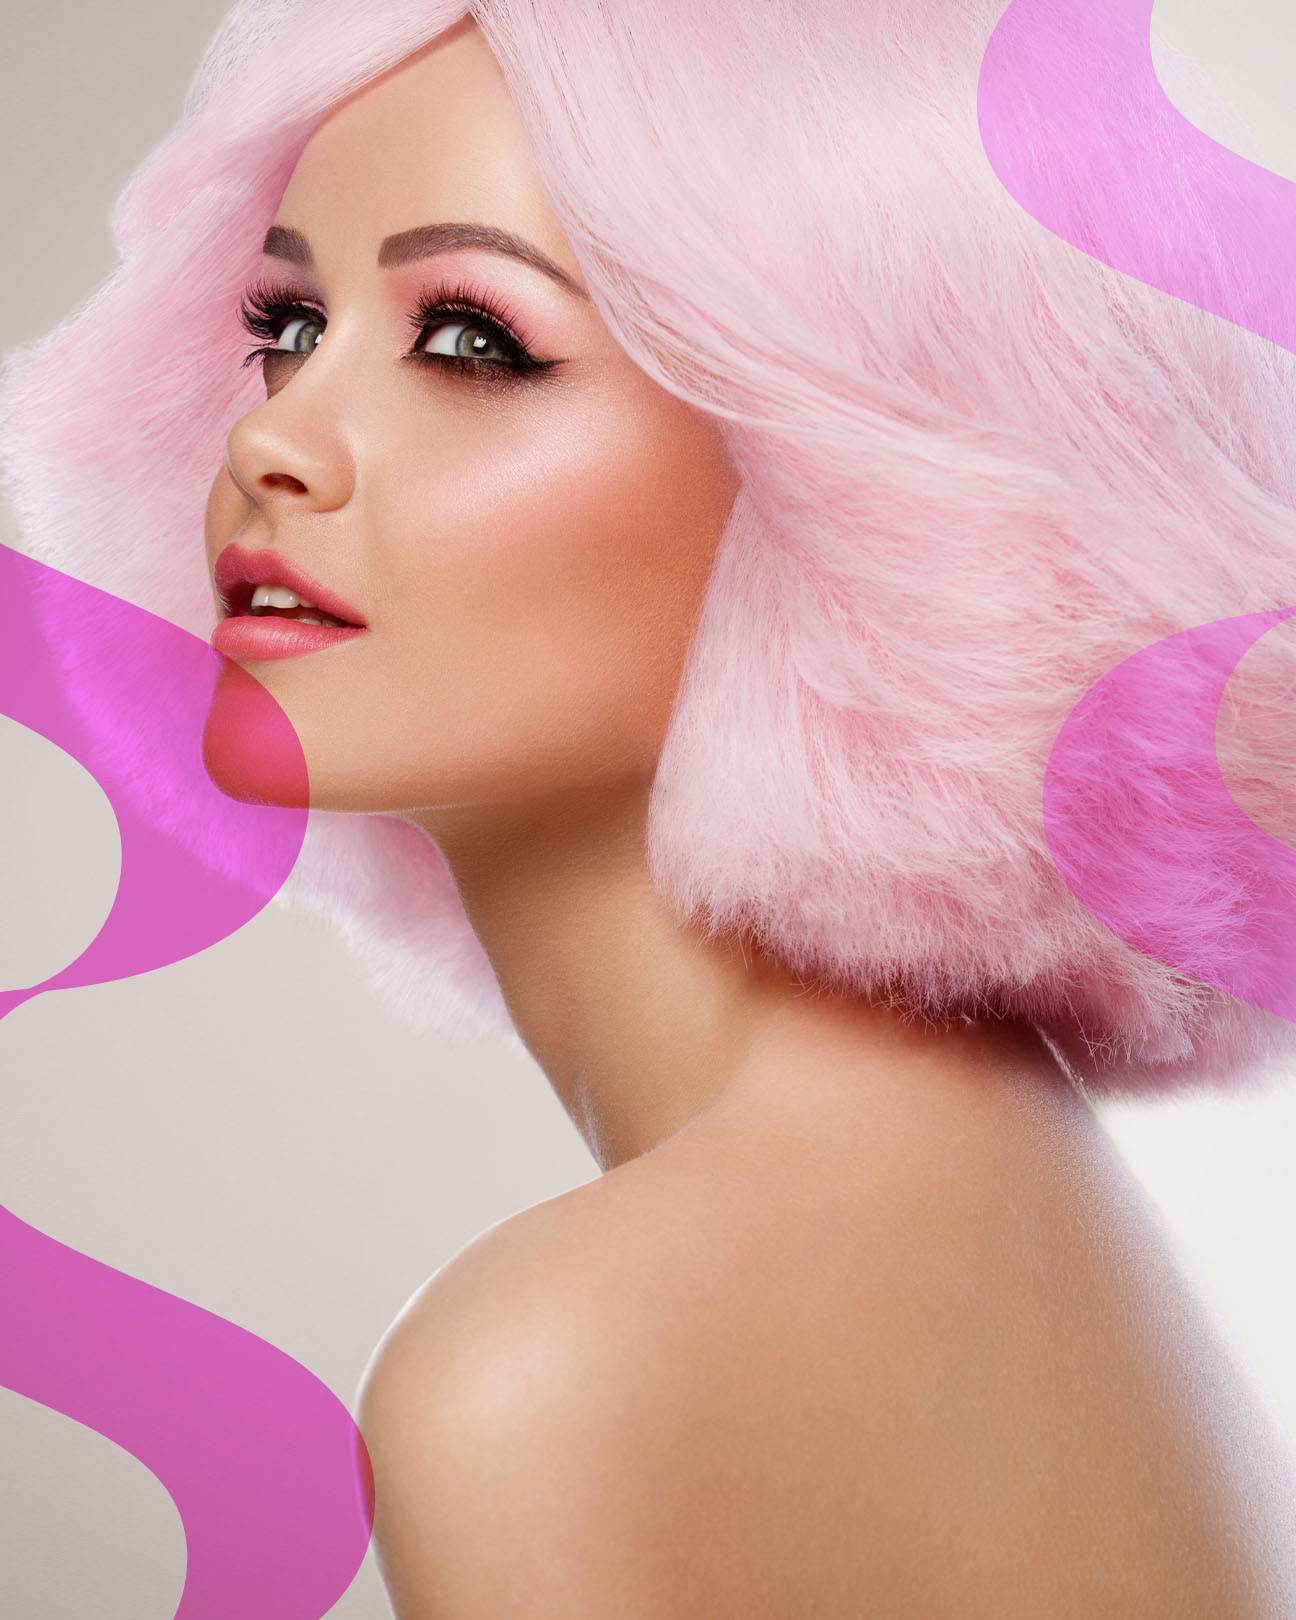 woman with bright pink hair and makeup